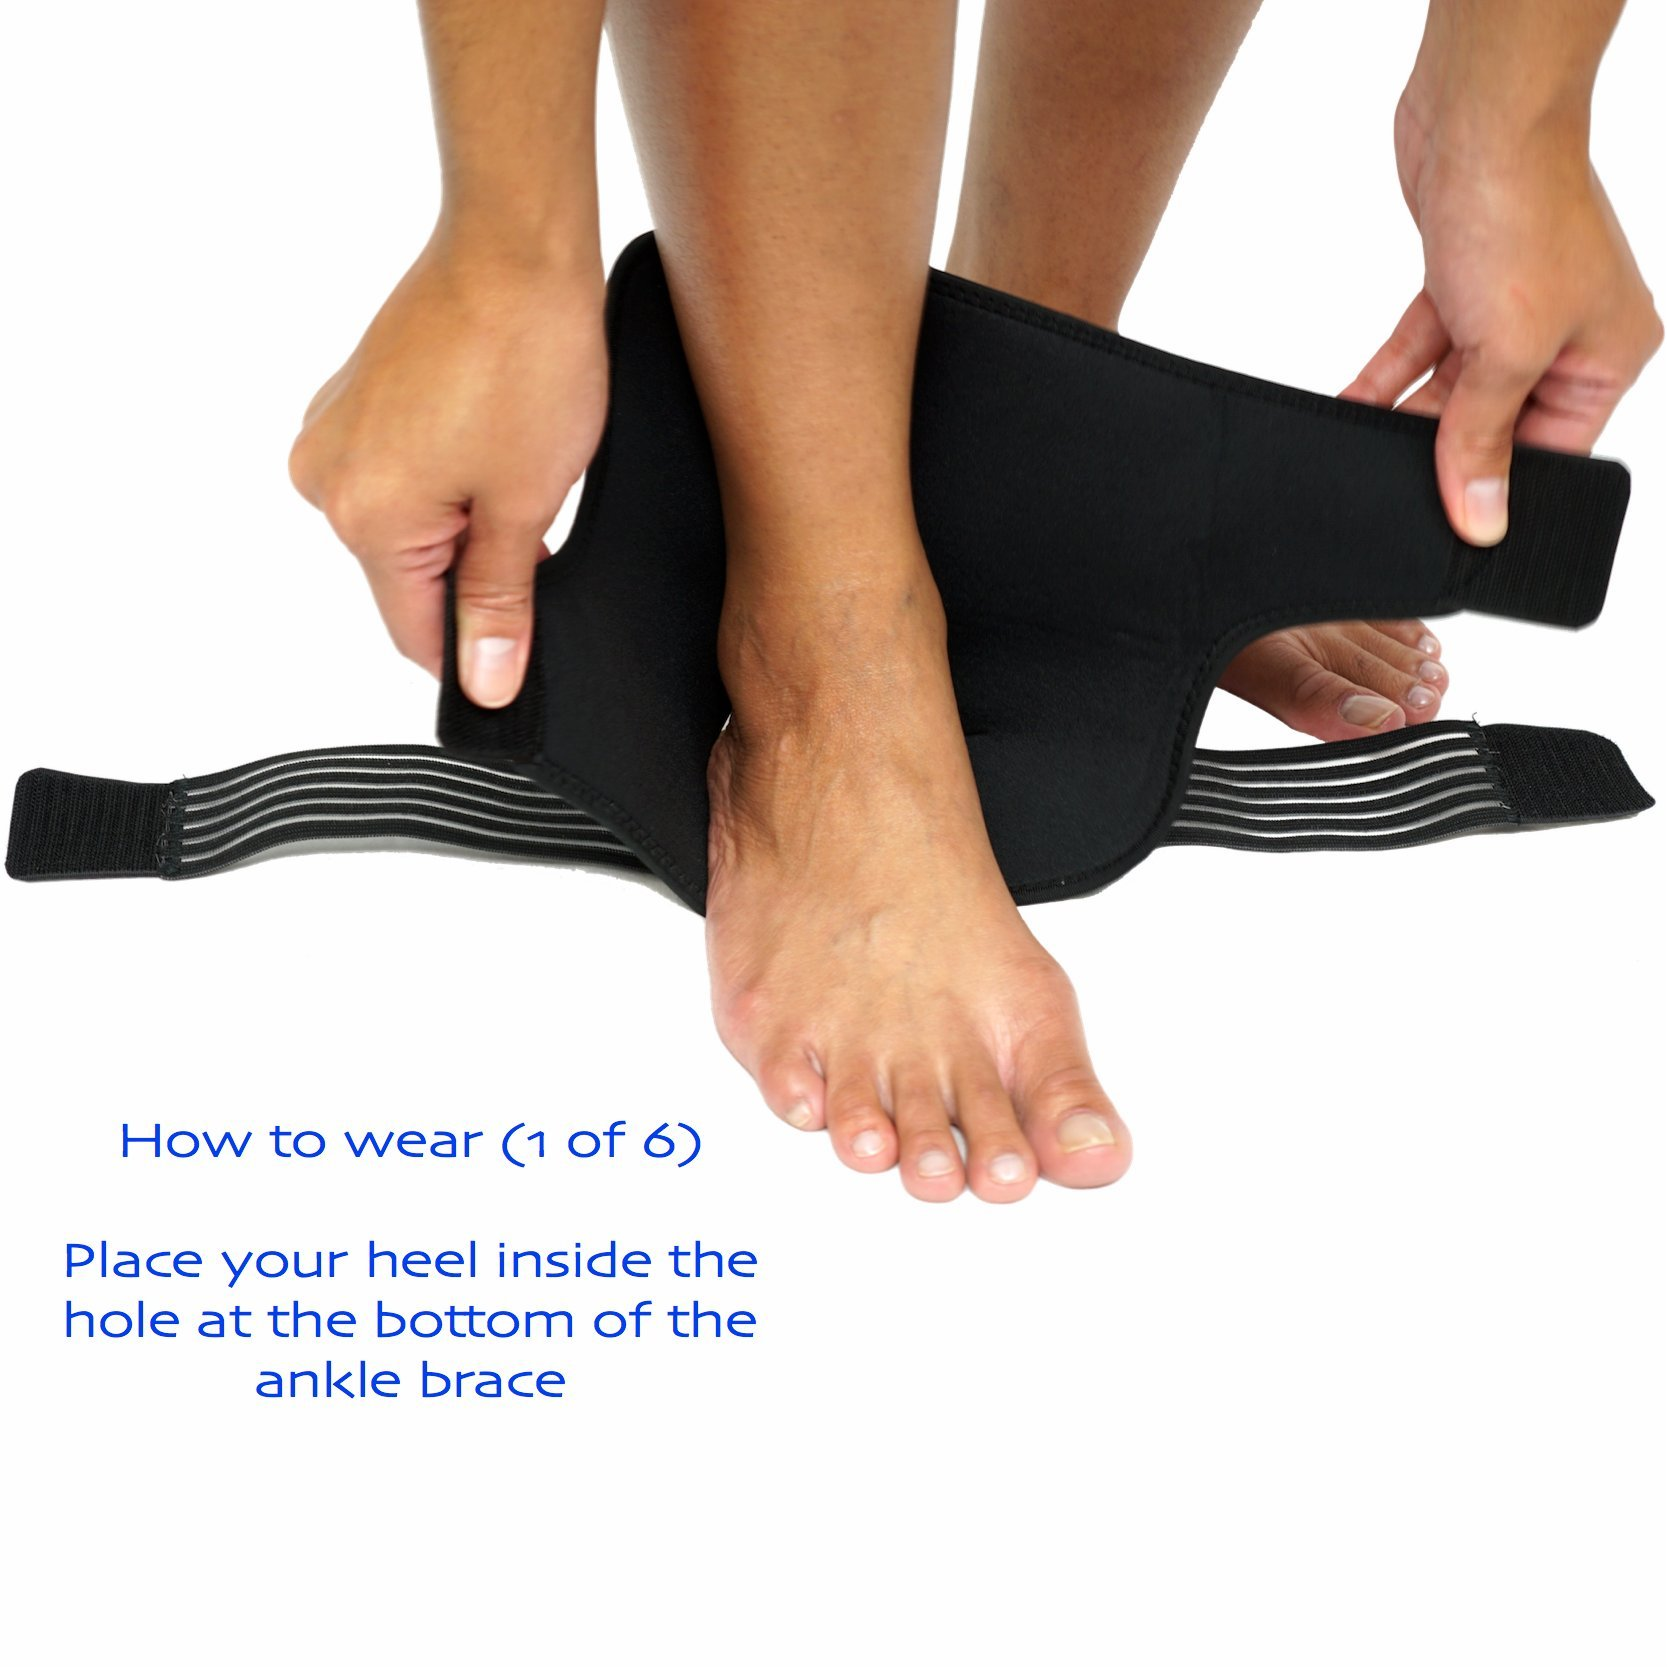 Ankle Brace (PAIR) with Bonus Straps, for Ankle Support, Plantar Fasciitis, or Swollen Ankles, One Size Fits Most, By ZSX SPORT (Foot Size - Reg) by ZSX (Image #3)